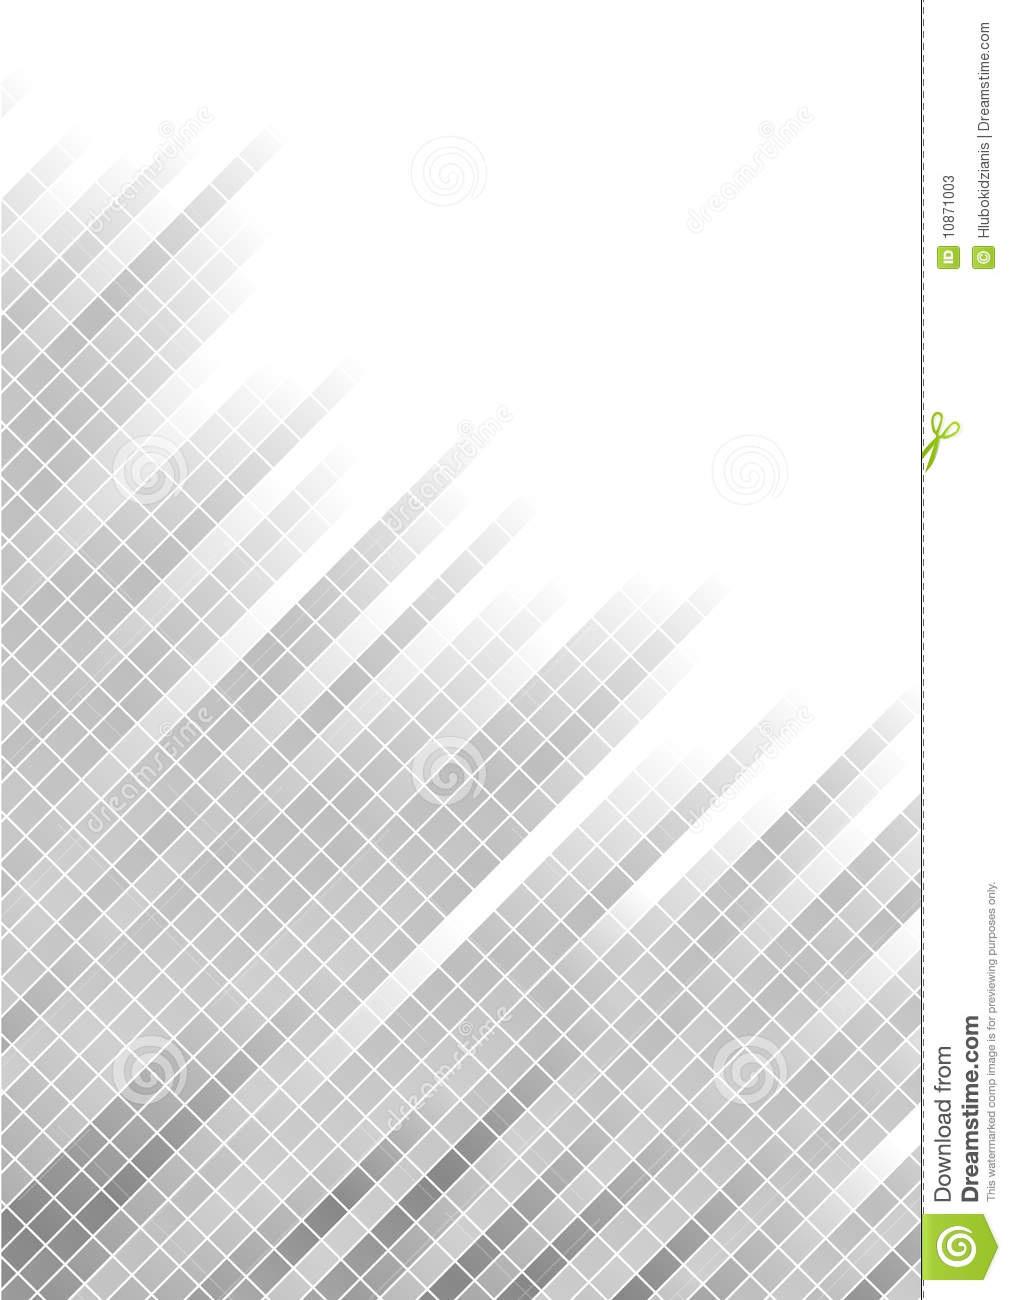 Download Vector Abstract Silver Background With Square Stock Vector - Illustration of name, gray: 10871003